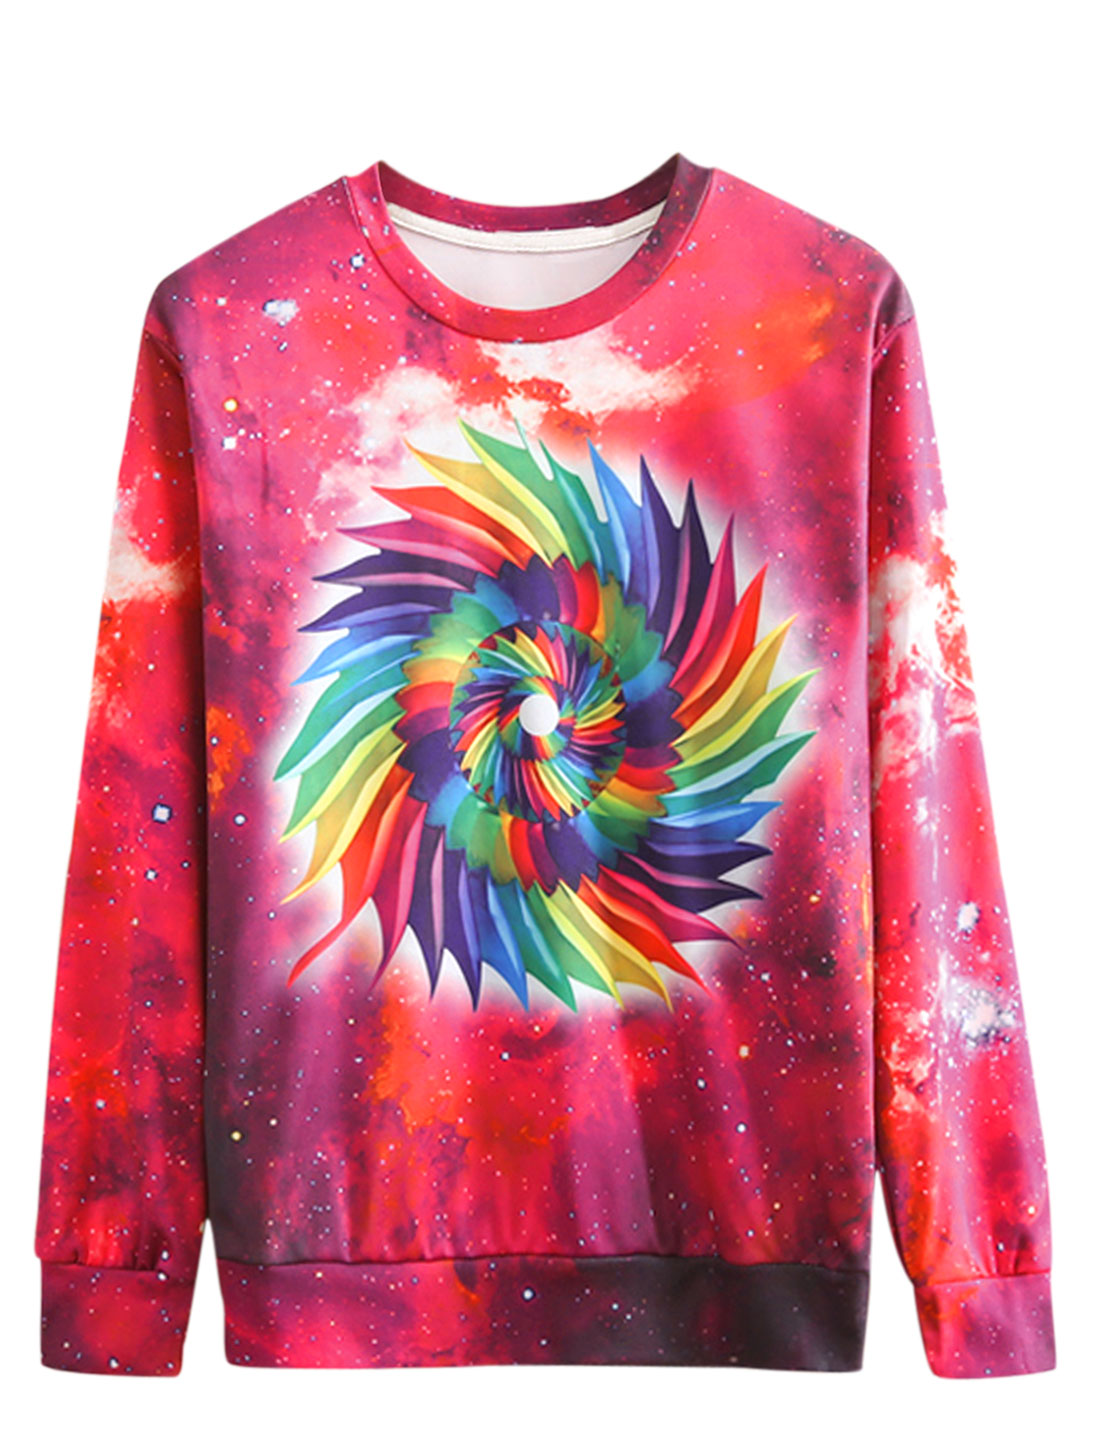 Men Round Neck Long Sleeves Galaxy Prints Trendy Sweatshirt Fuchsia Multicolor M